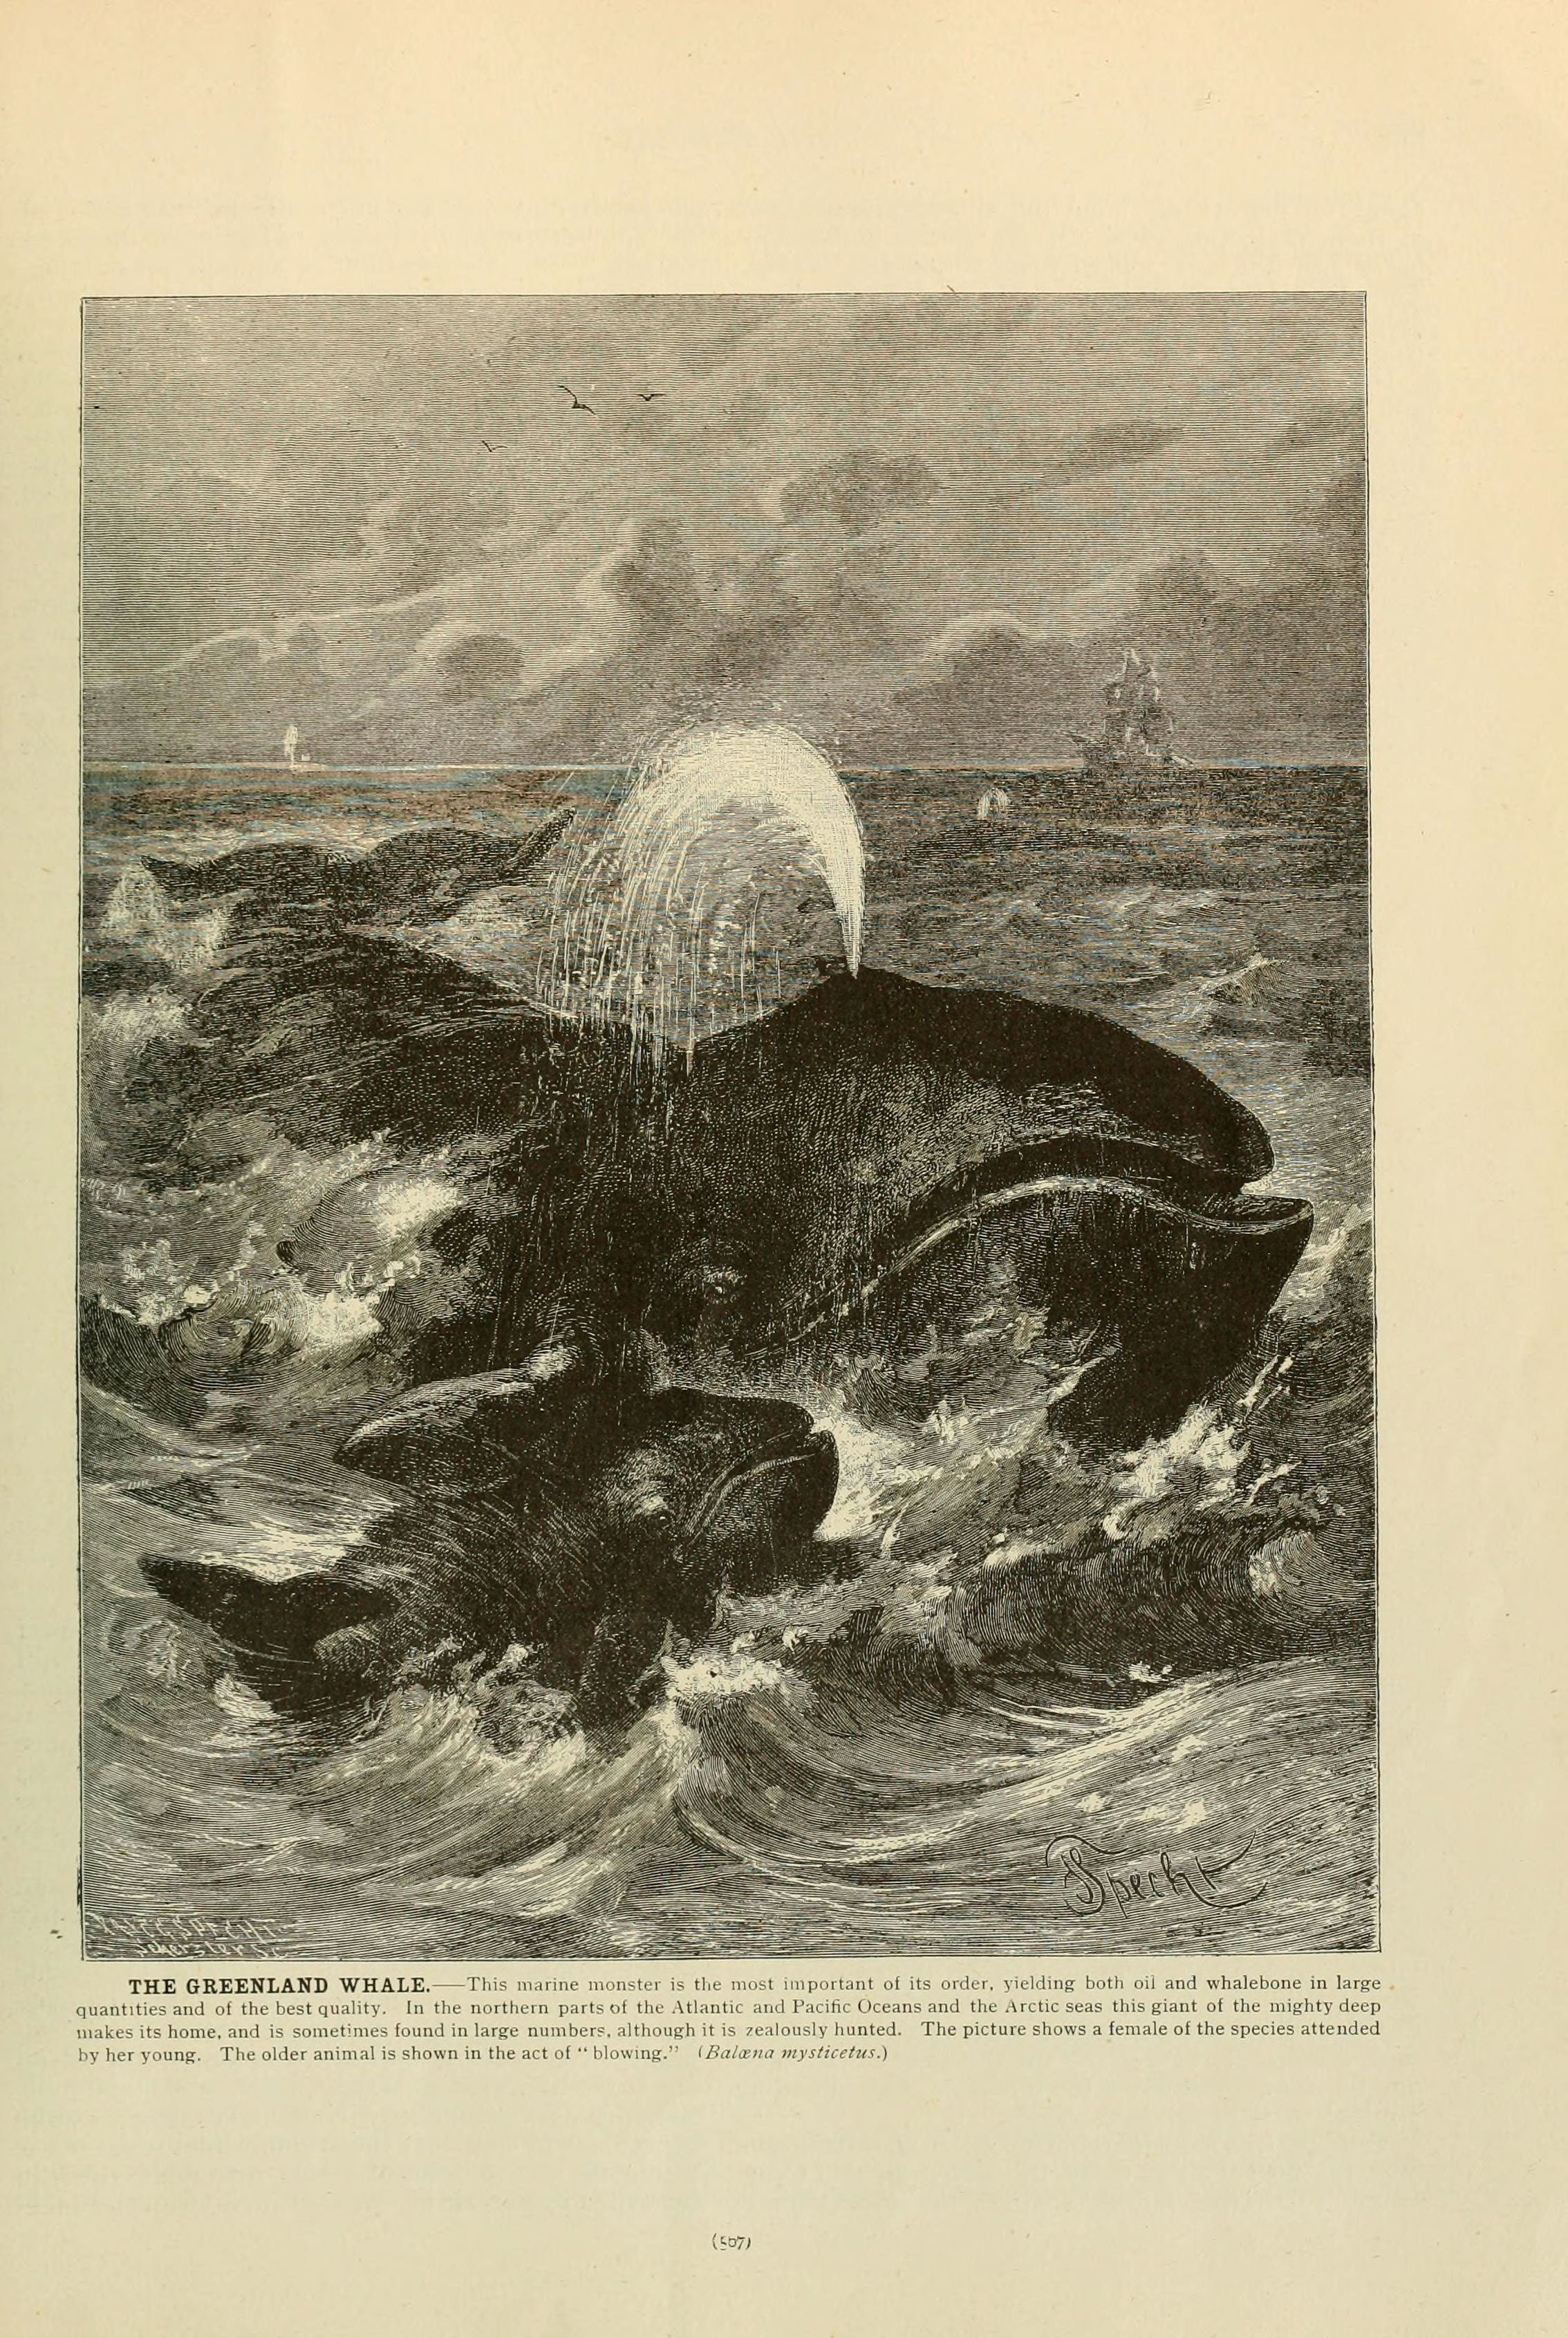 Image of Whale